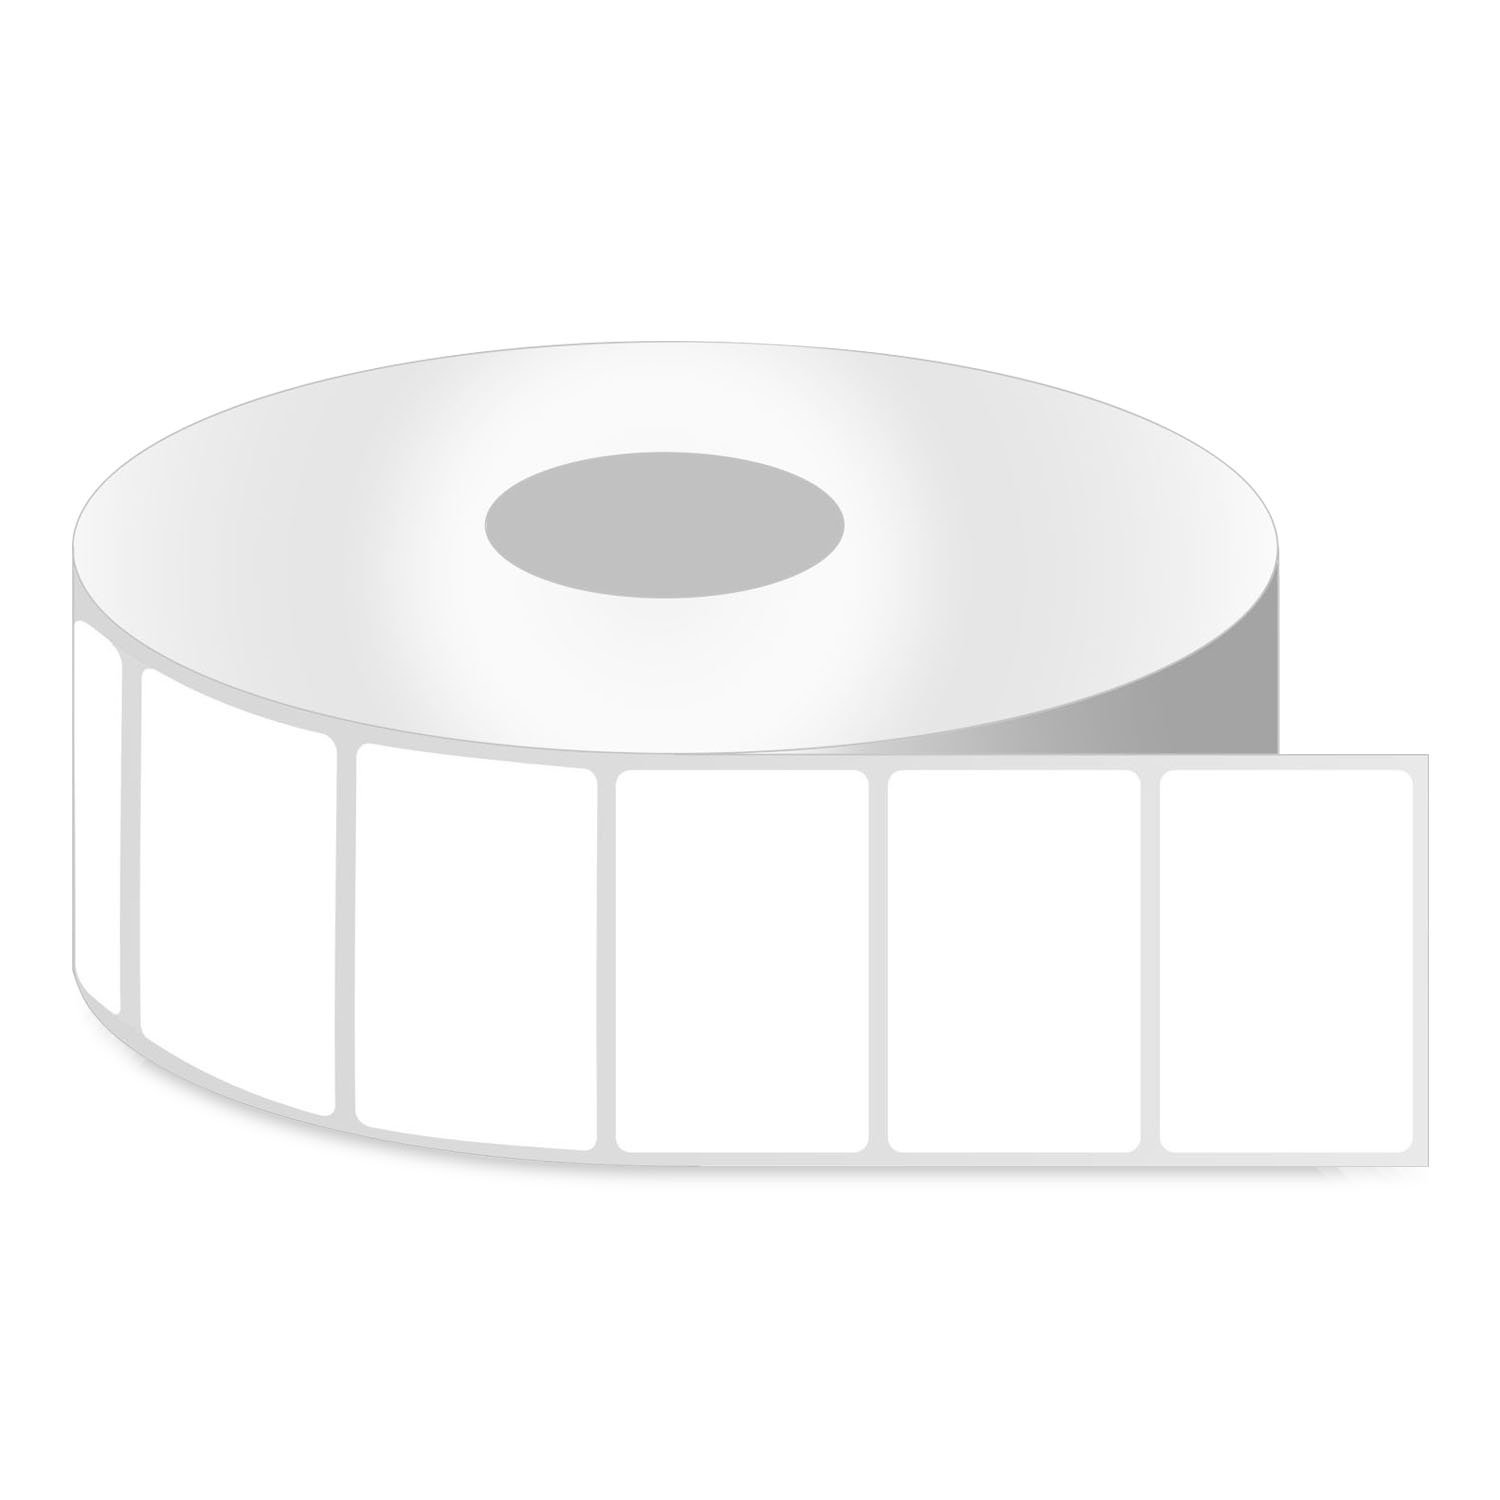 2'' x 1'' [ OfficeSmartLabels ] Removable Direct Thermal Labels, Compatible with Zebra Printers Postage Barcode Shipping Desktop Printer Sticker - 25 Rolls / 1'' Core by OfficeSmartLabels